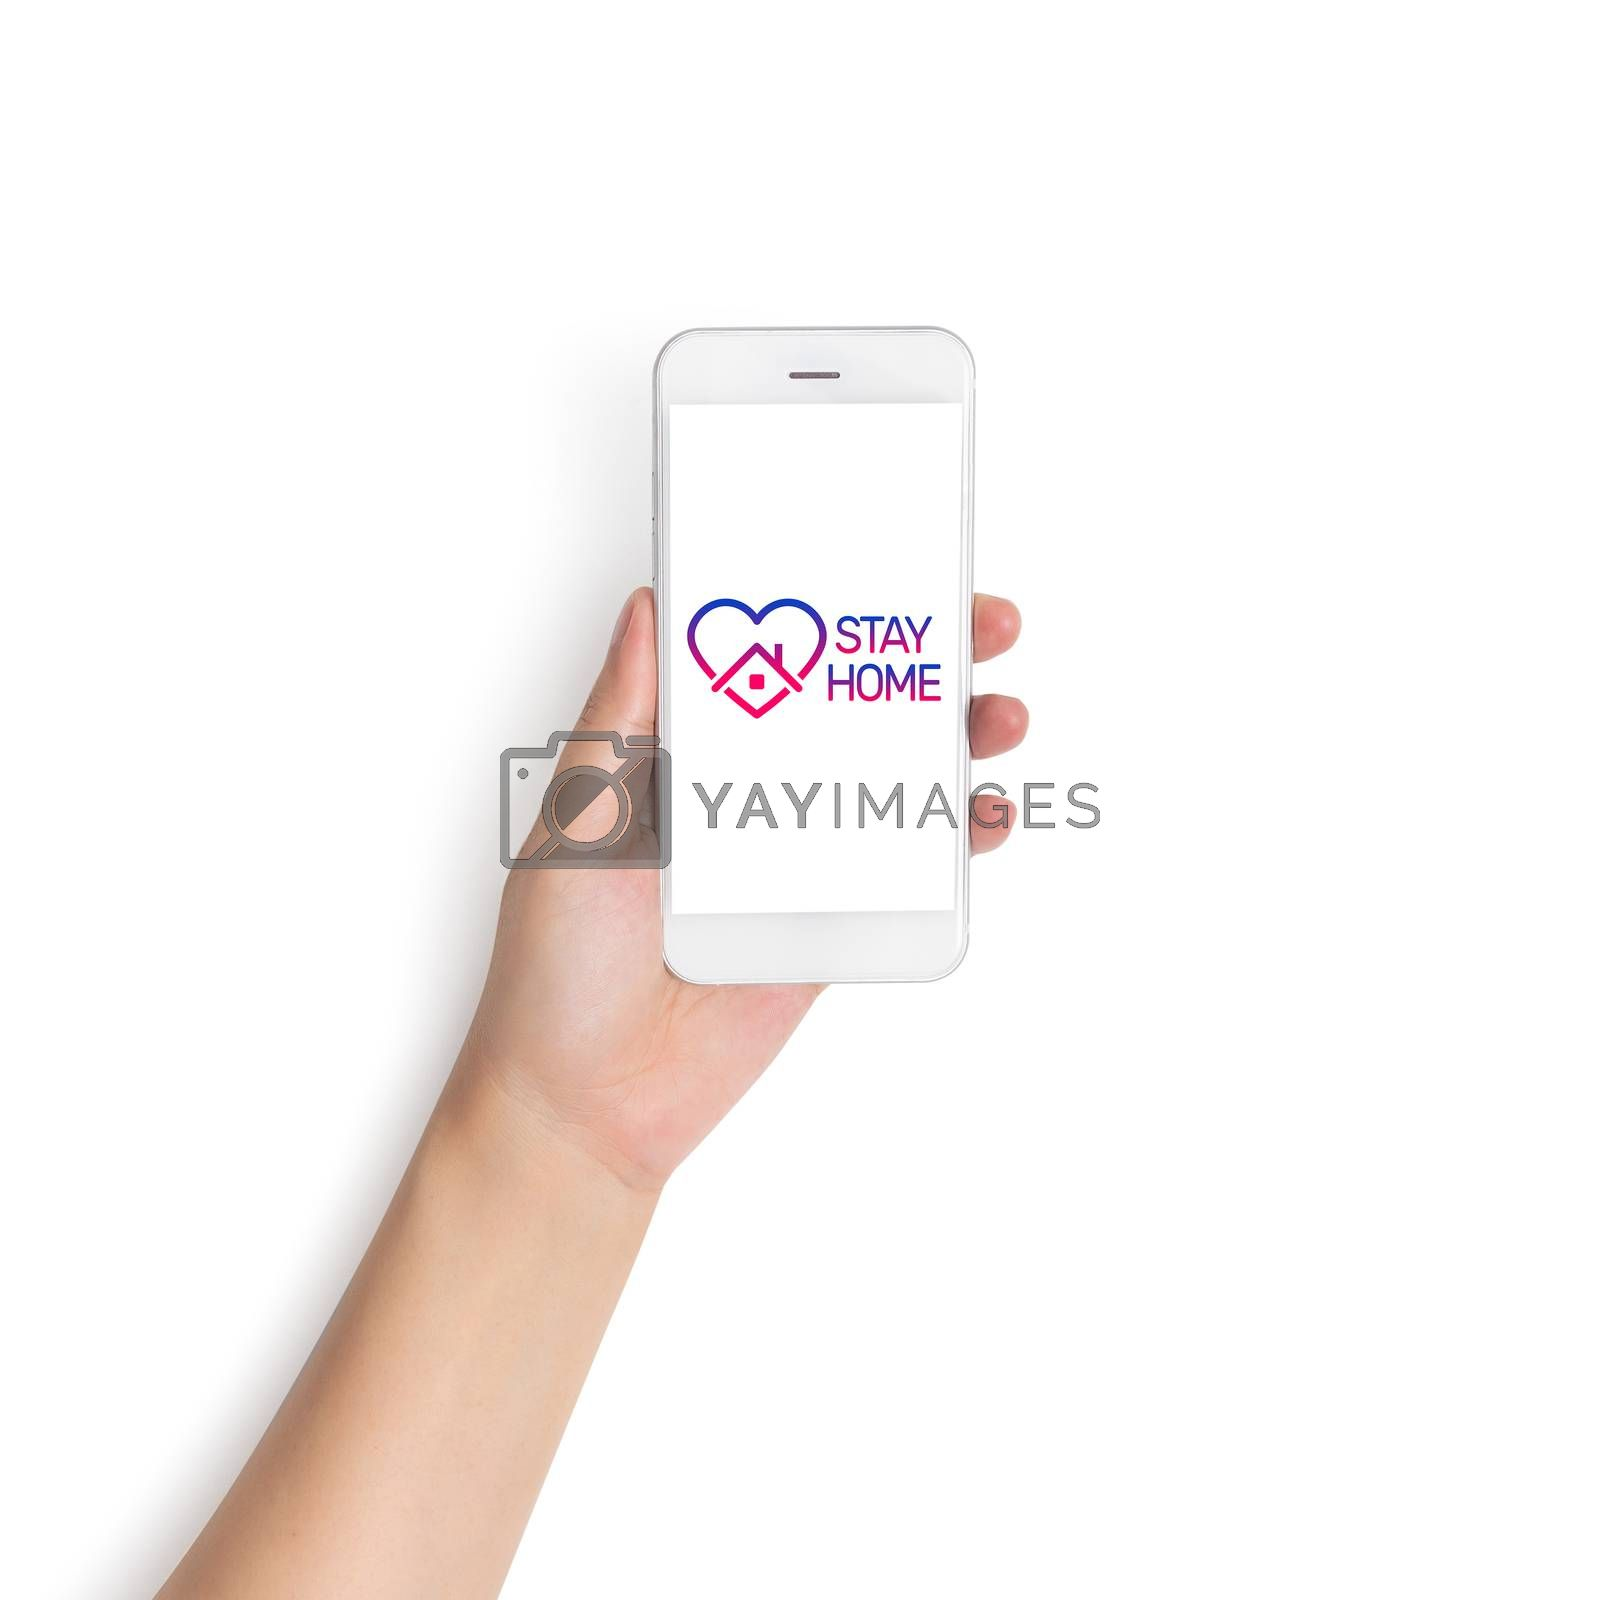 stay home logo on mobile phone, awareness social media campaign  by asiandelight